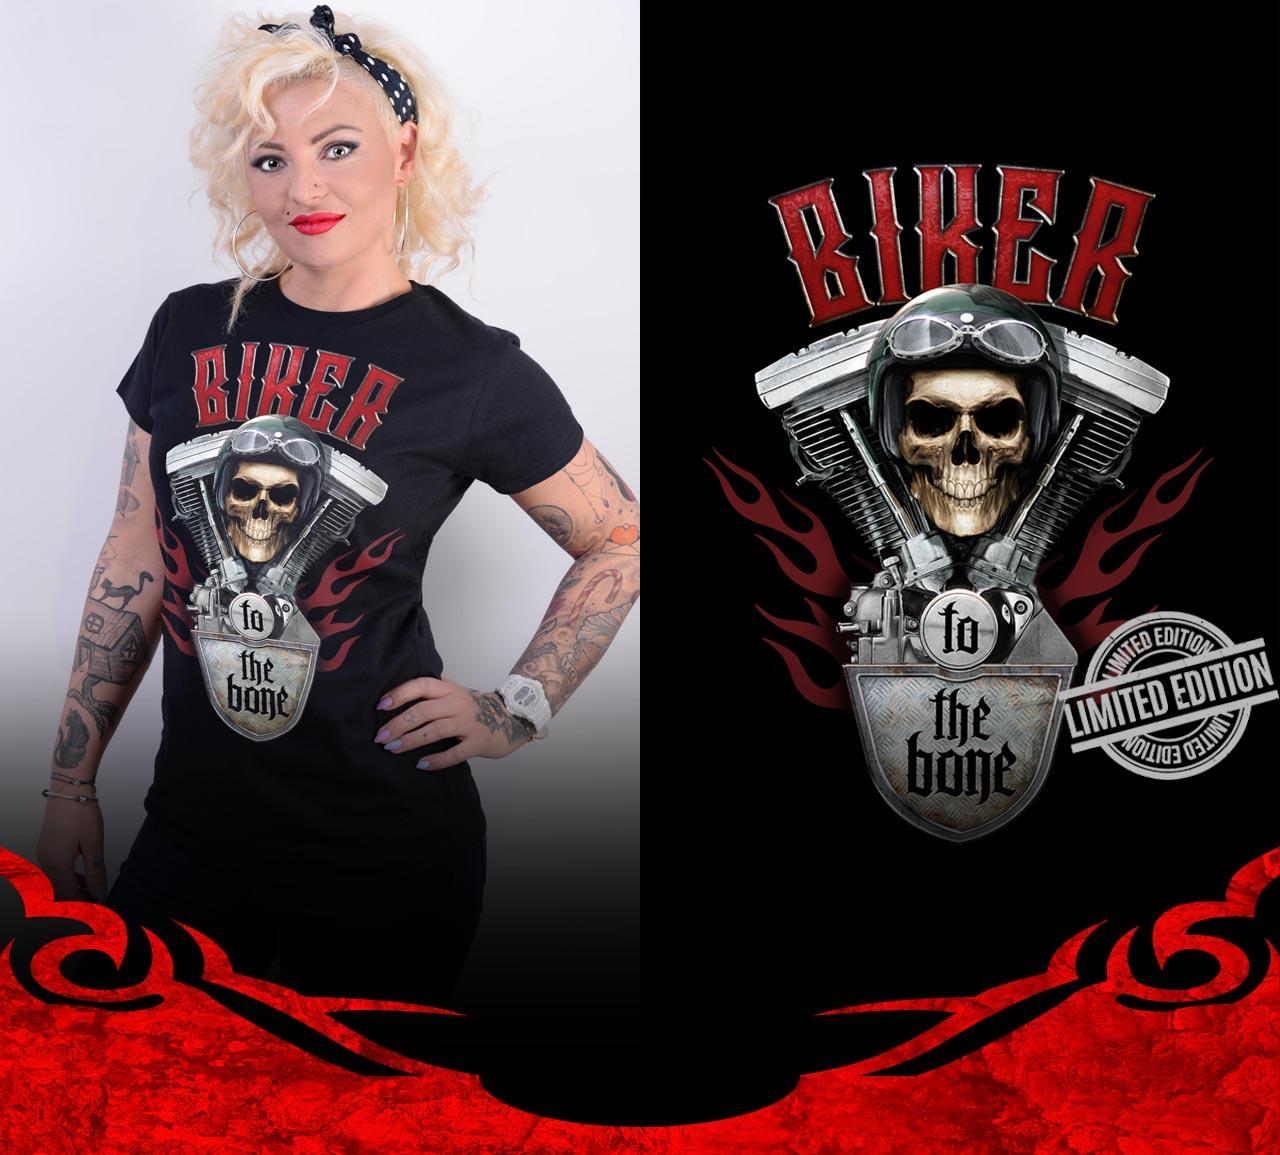 Biker To The Bone Shirt